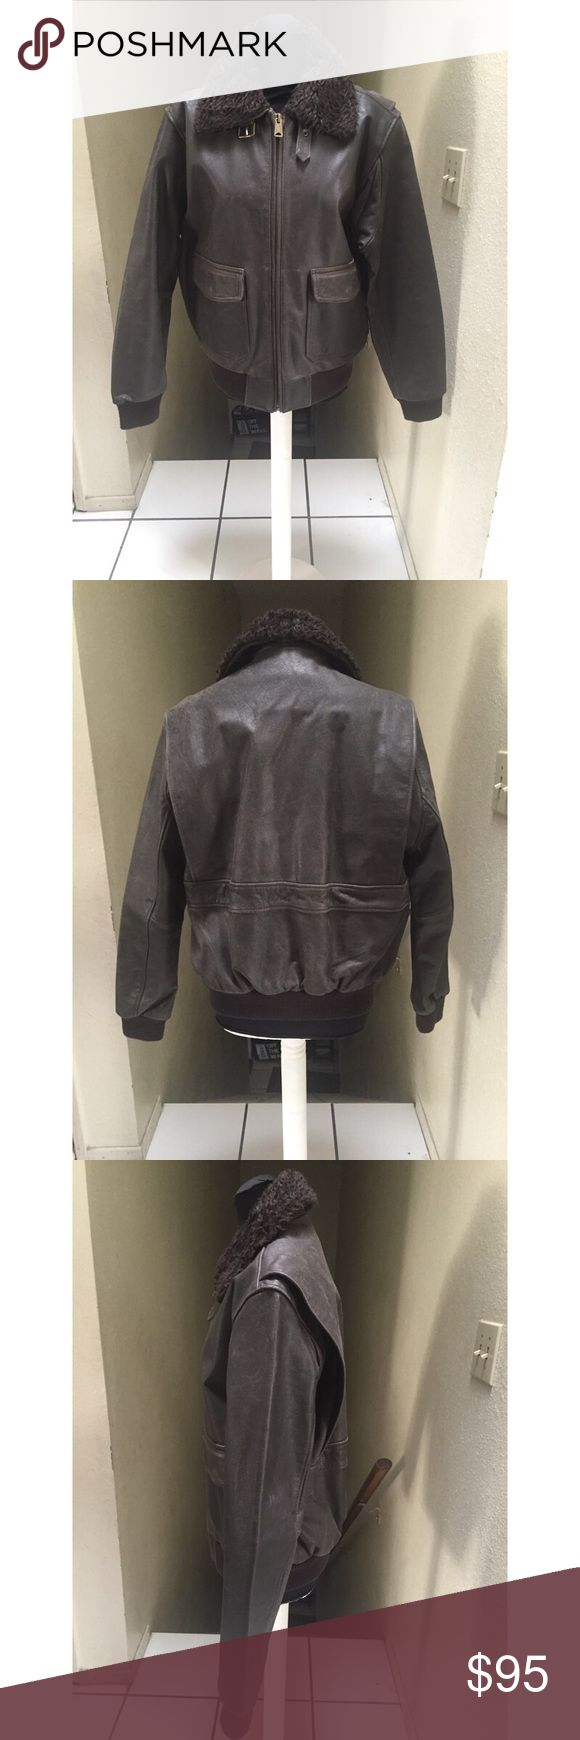 H&M Men's Leather Bomber Jacket Men's leather, brown, bomber jacket with faux fur collar, size medium. Marks on sleeve but can be removed with leather cleaner. Marks on garments gives it more of the vintage look. H&M Jackets & Coats Bomber & Varsity